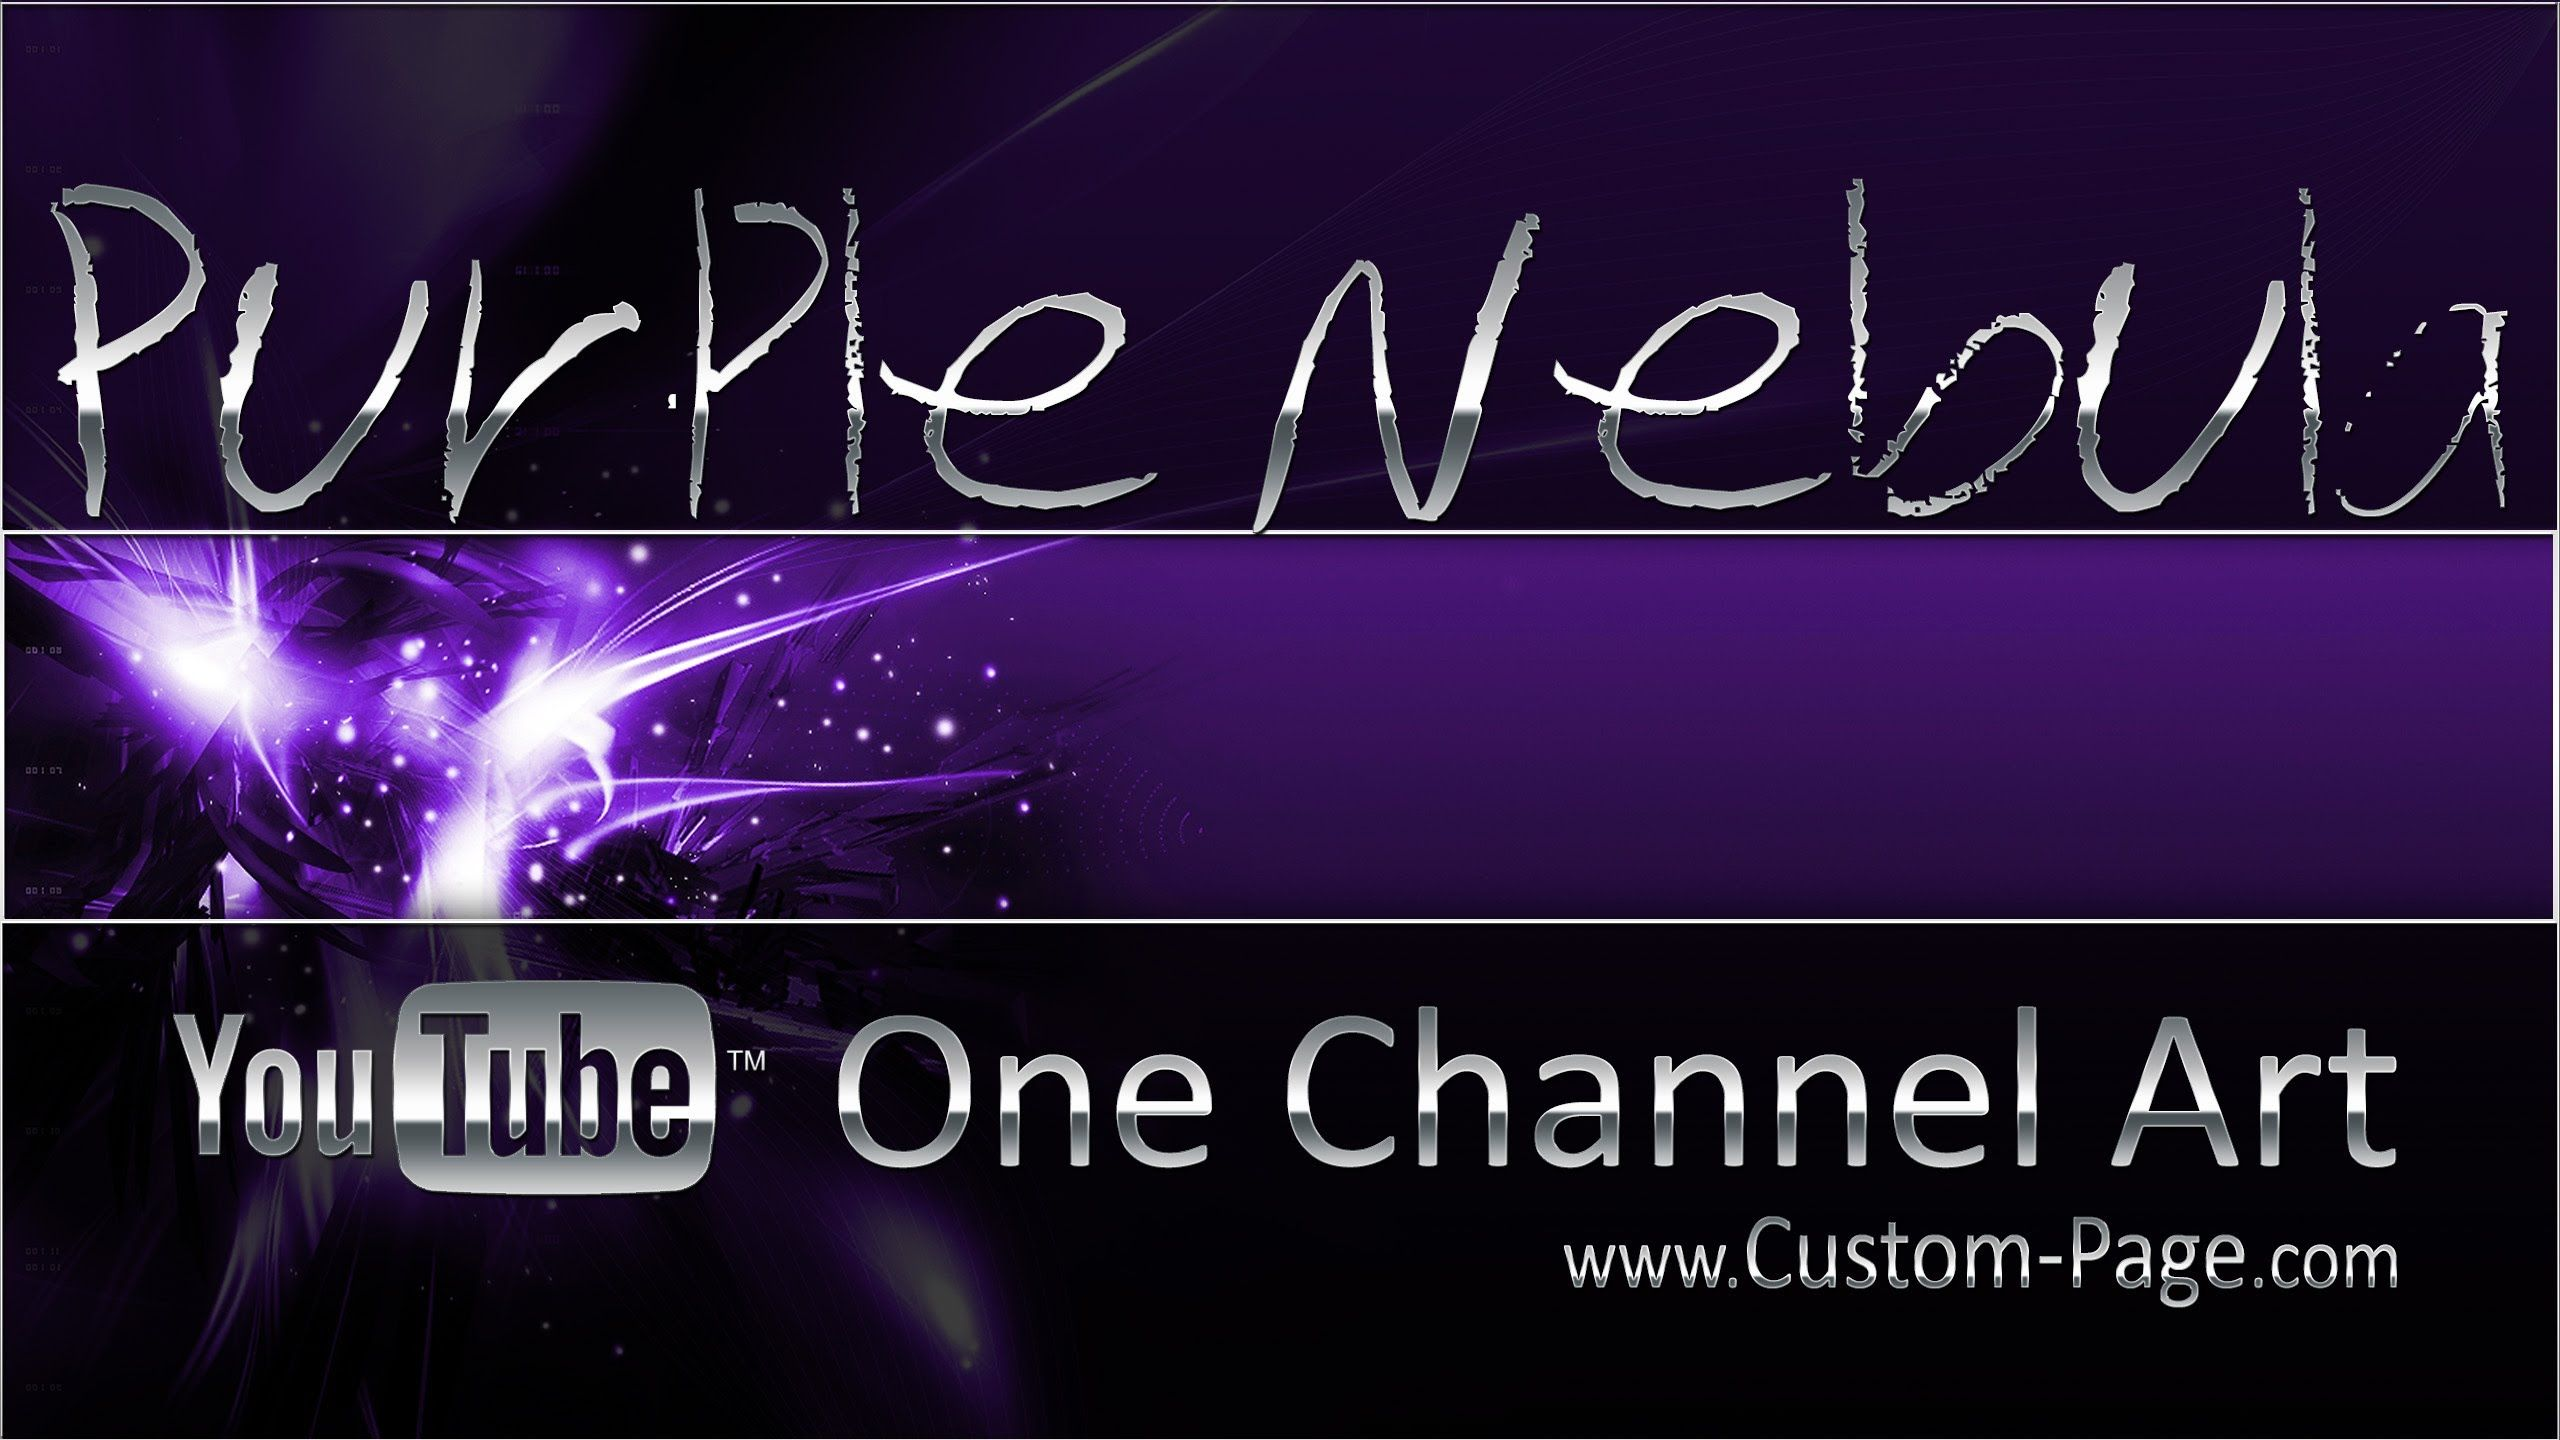 Purple nebula youtube channel art template photoshop psd youtube purple nebula youtube channel art template photoshop psd youtube youtube channel art art template maxwellsz